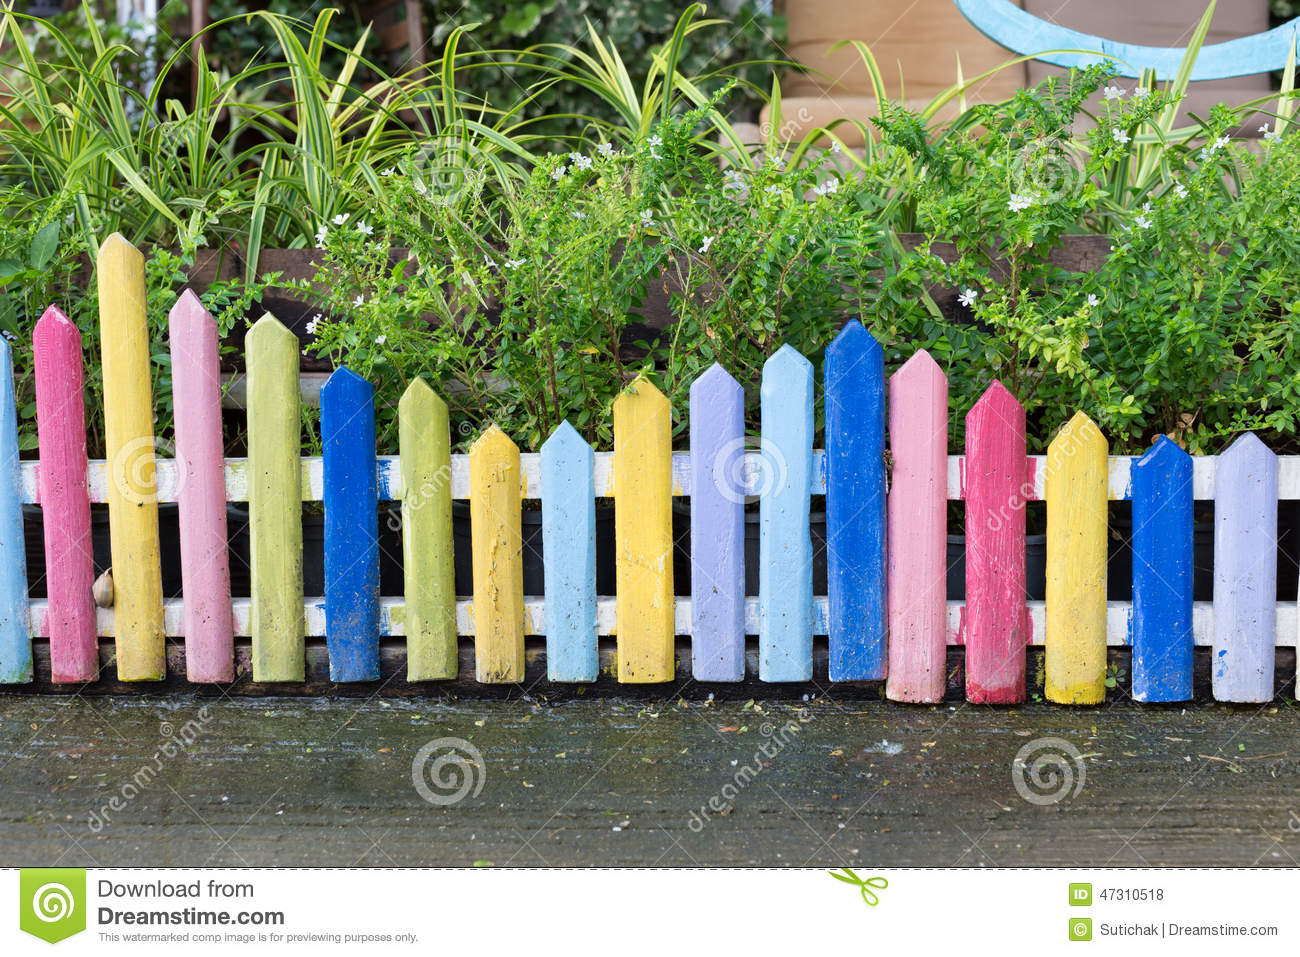 Barri re en bois color e dans le petit jardin photo stock for Barriere jardin bois